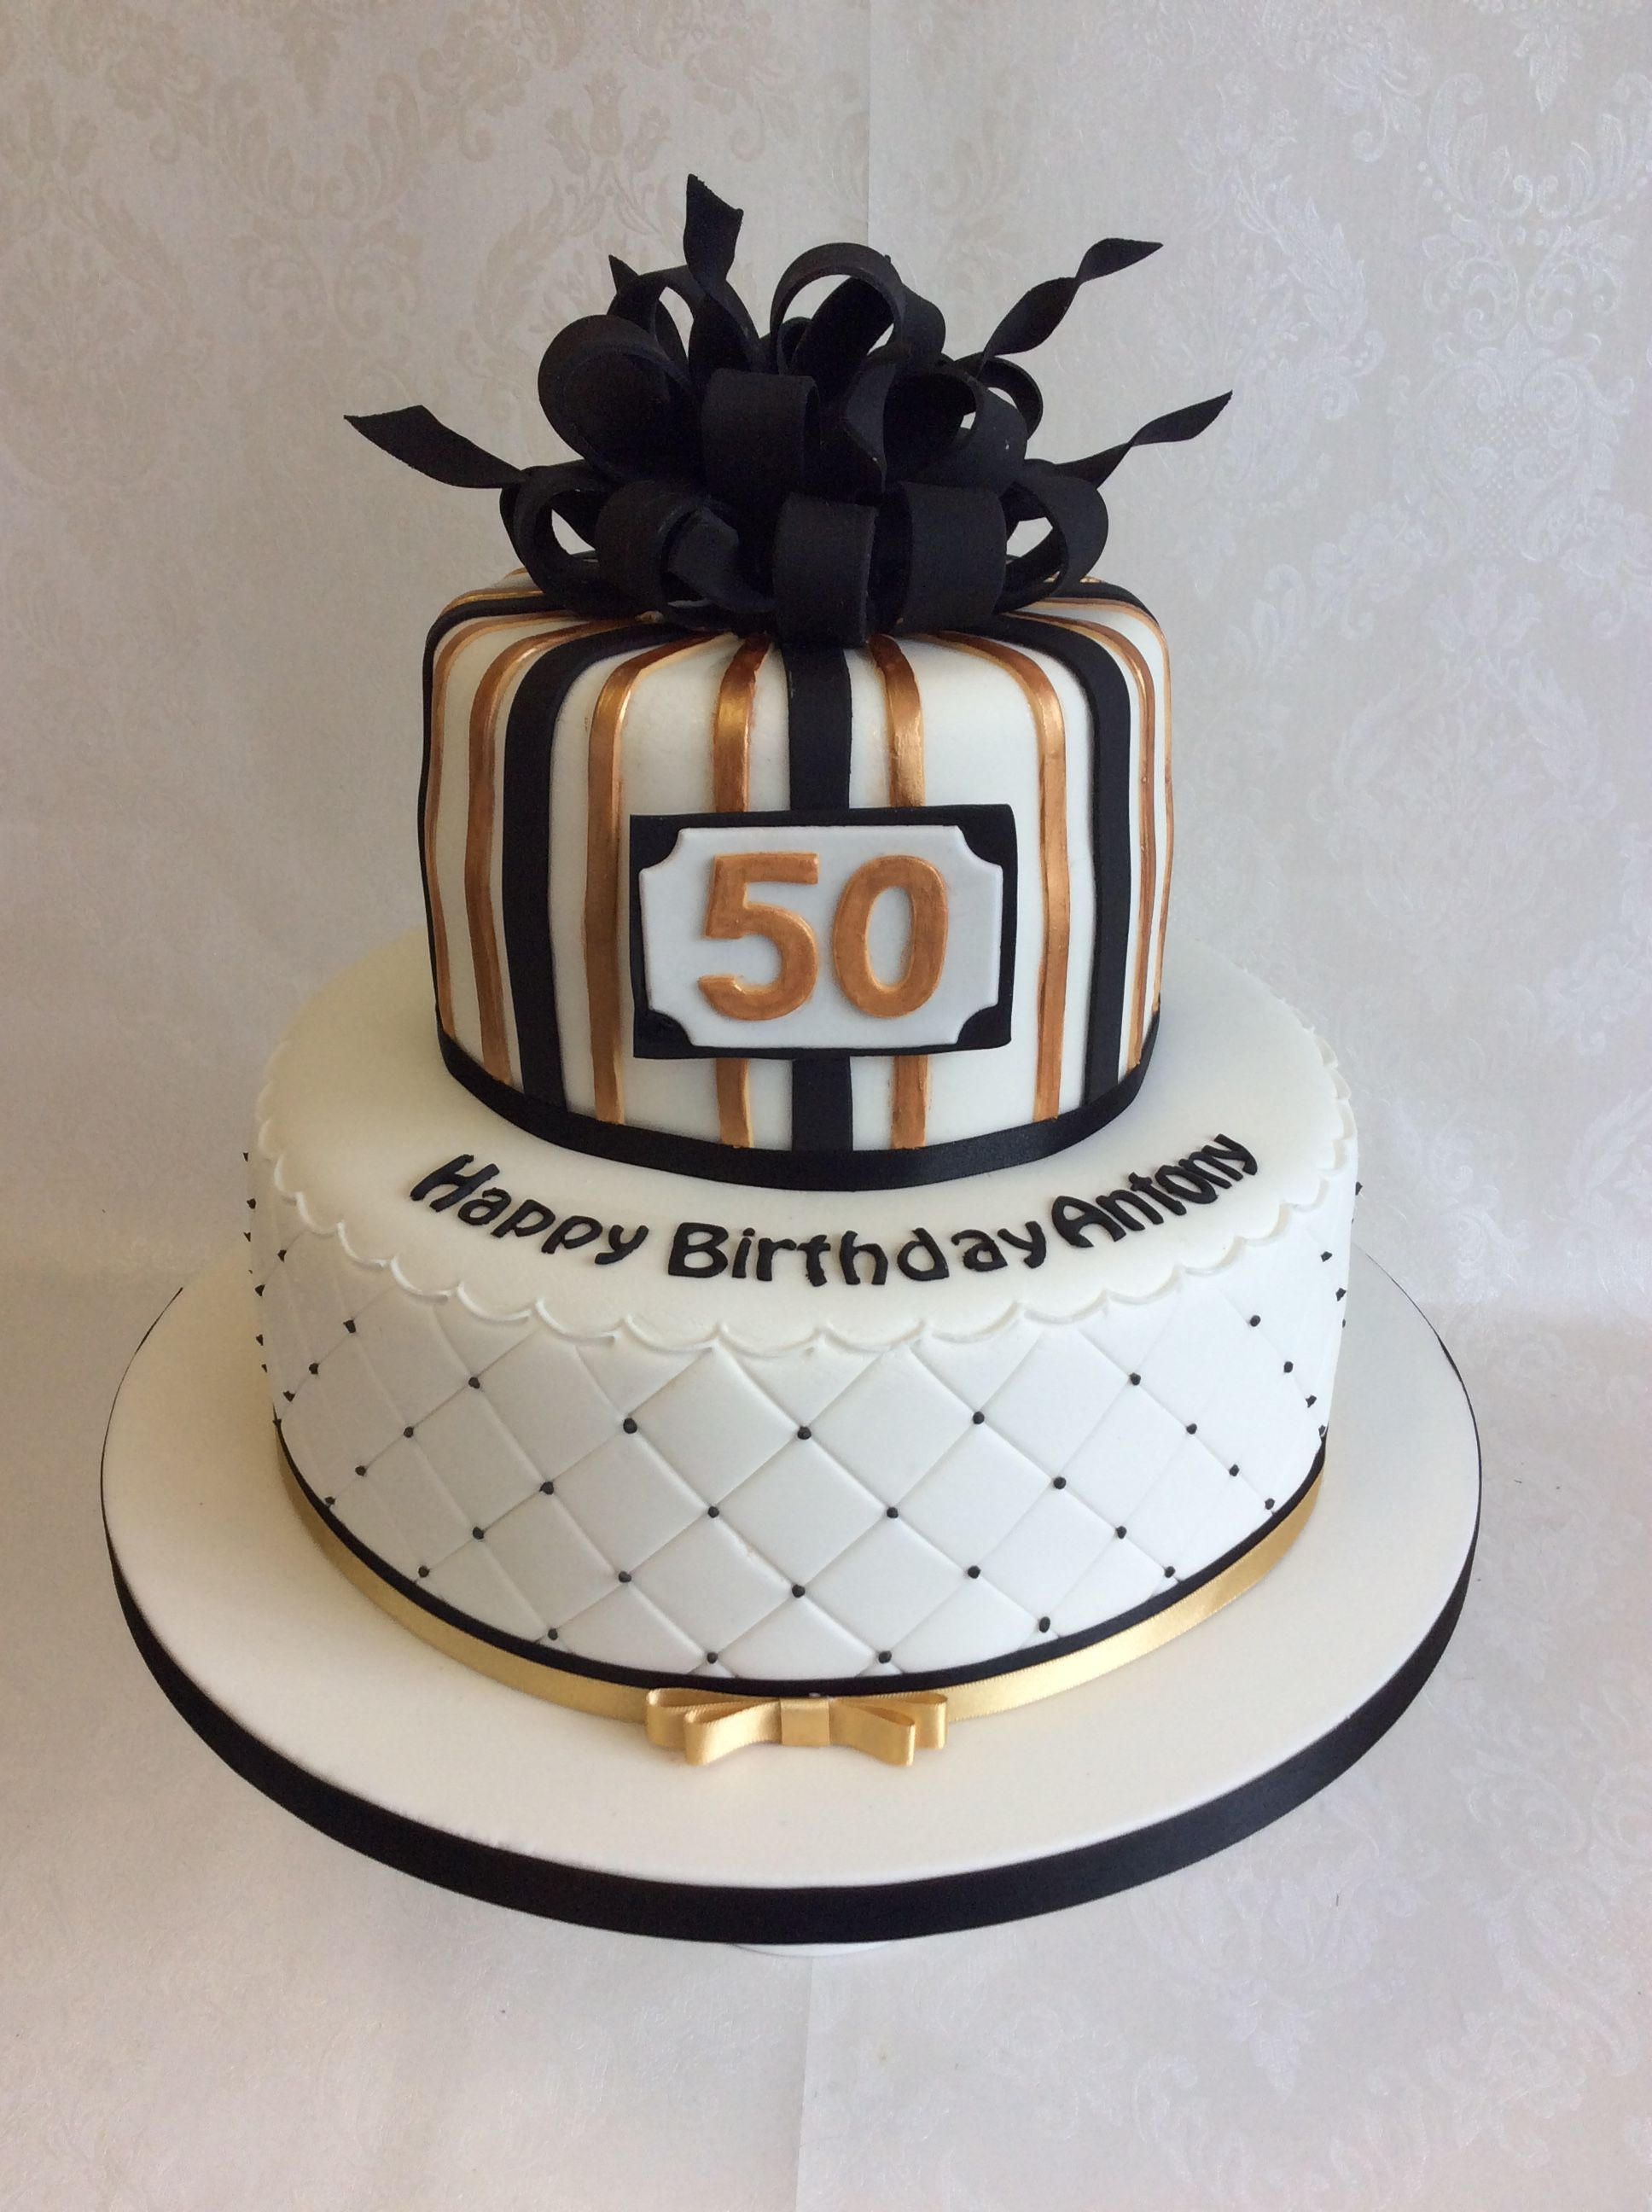 Parcel Style Top Tier For This 2 Black And Gold Themed Birthday Cake